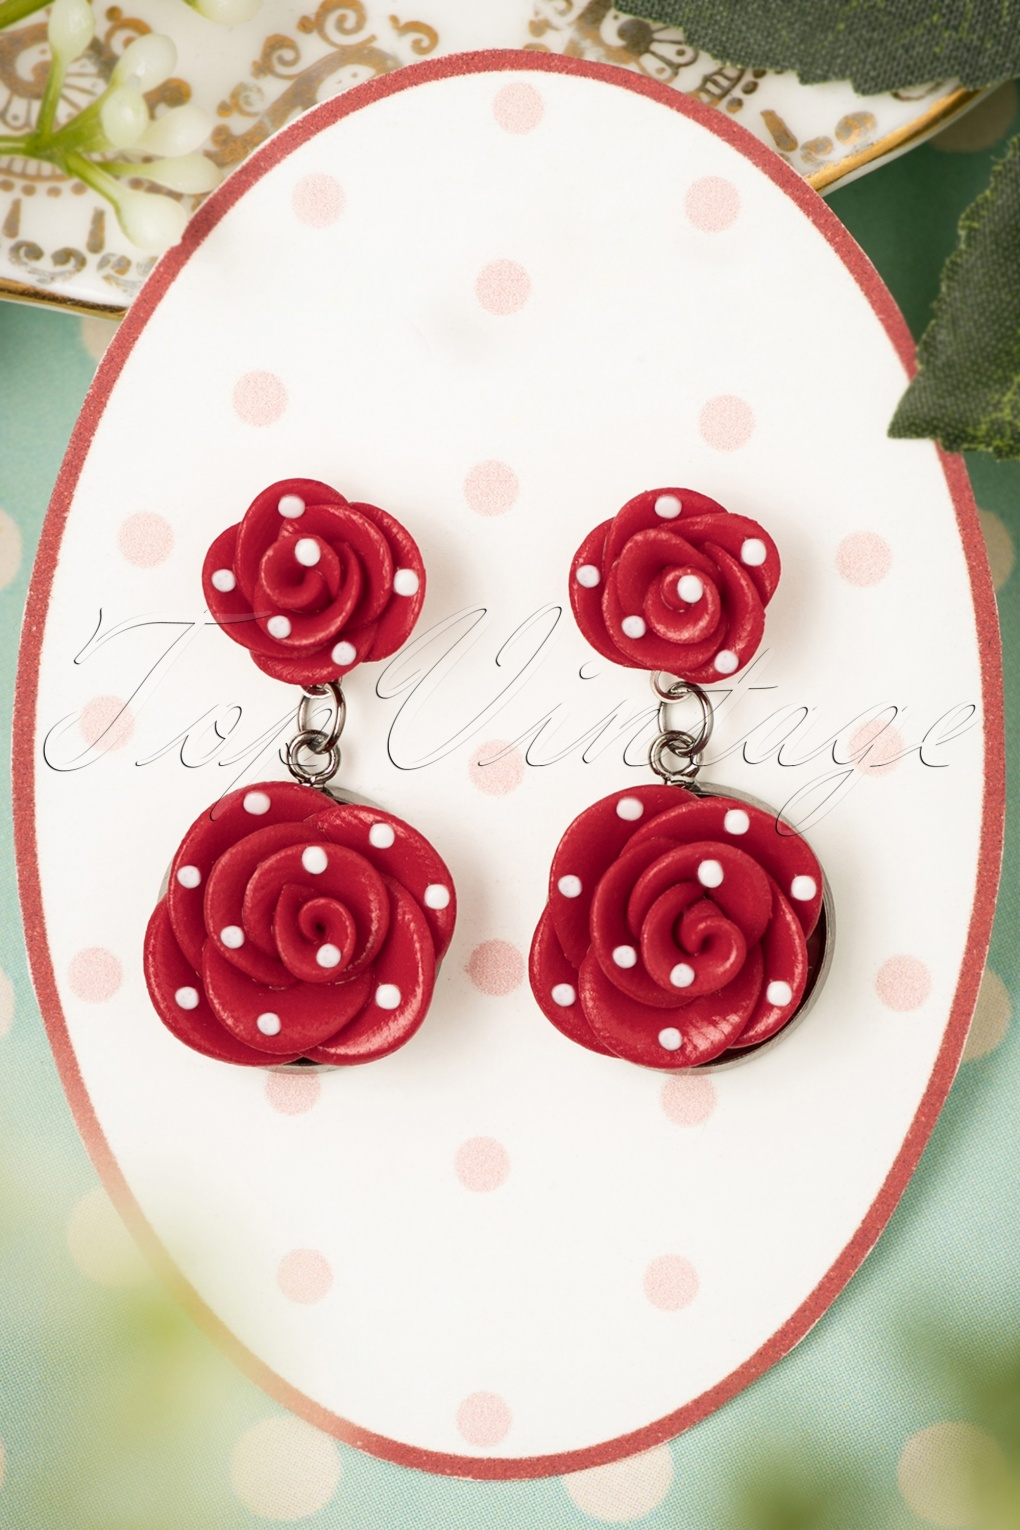 1940s Costume Jewelry: Necklaces, Earrings, Brooch, Bracelets 40s Romantic Red Roses Polkadot Earrings £13.28 AT vintagedancer.com